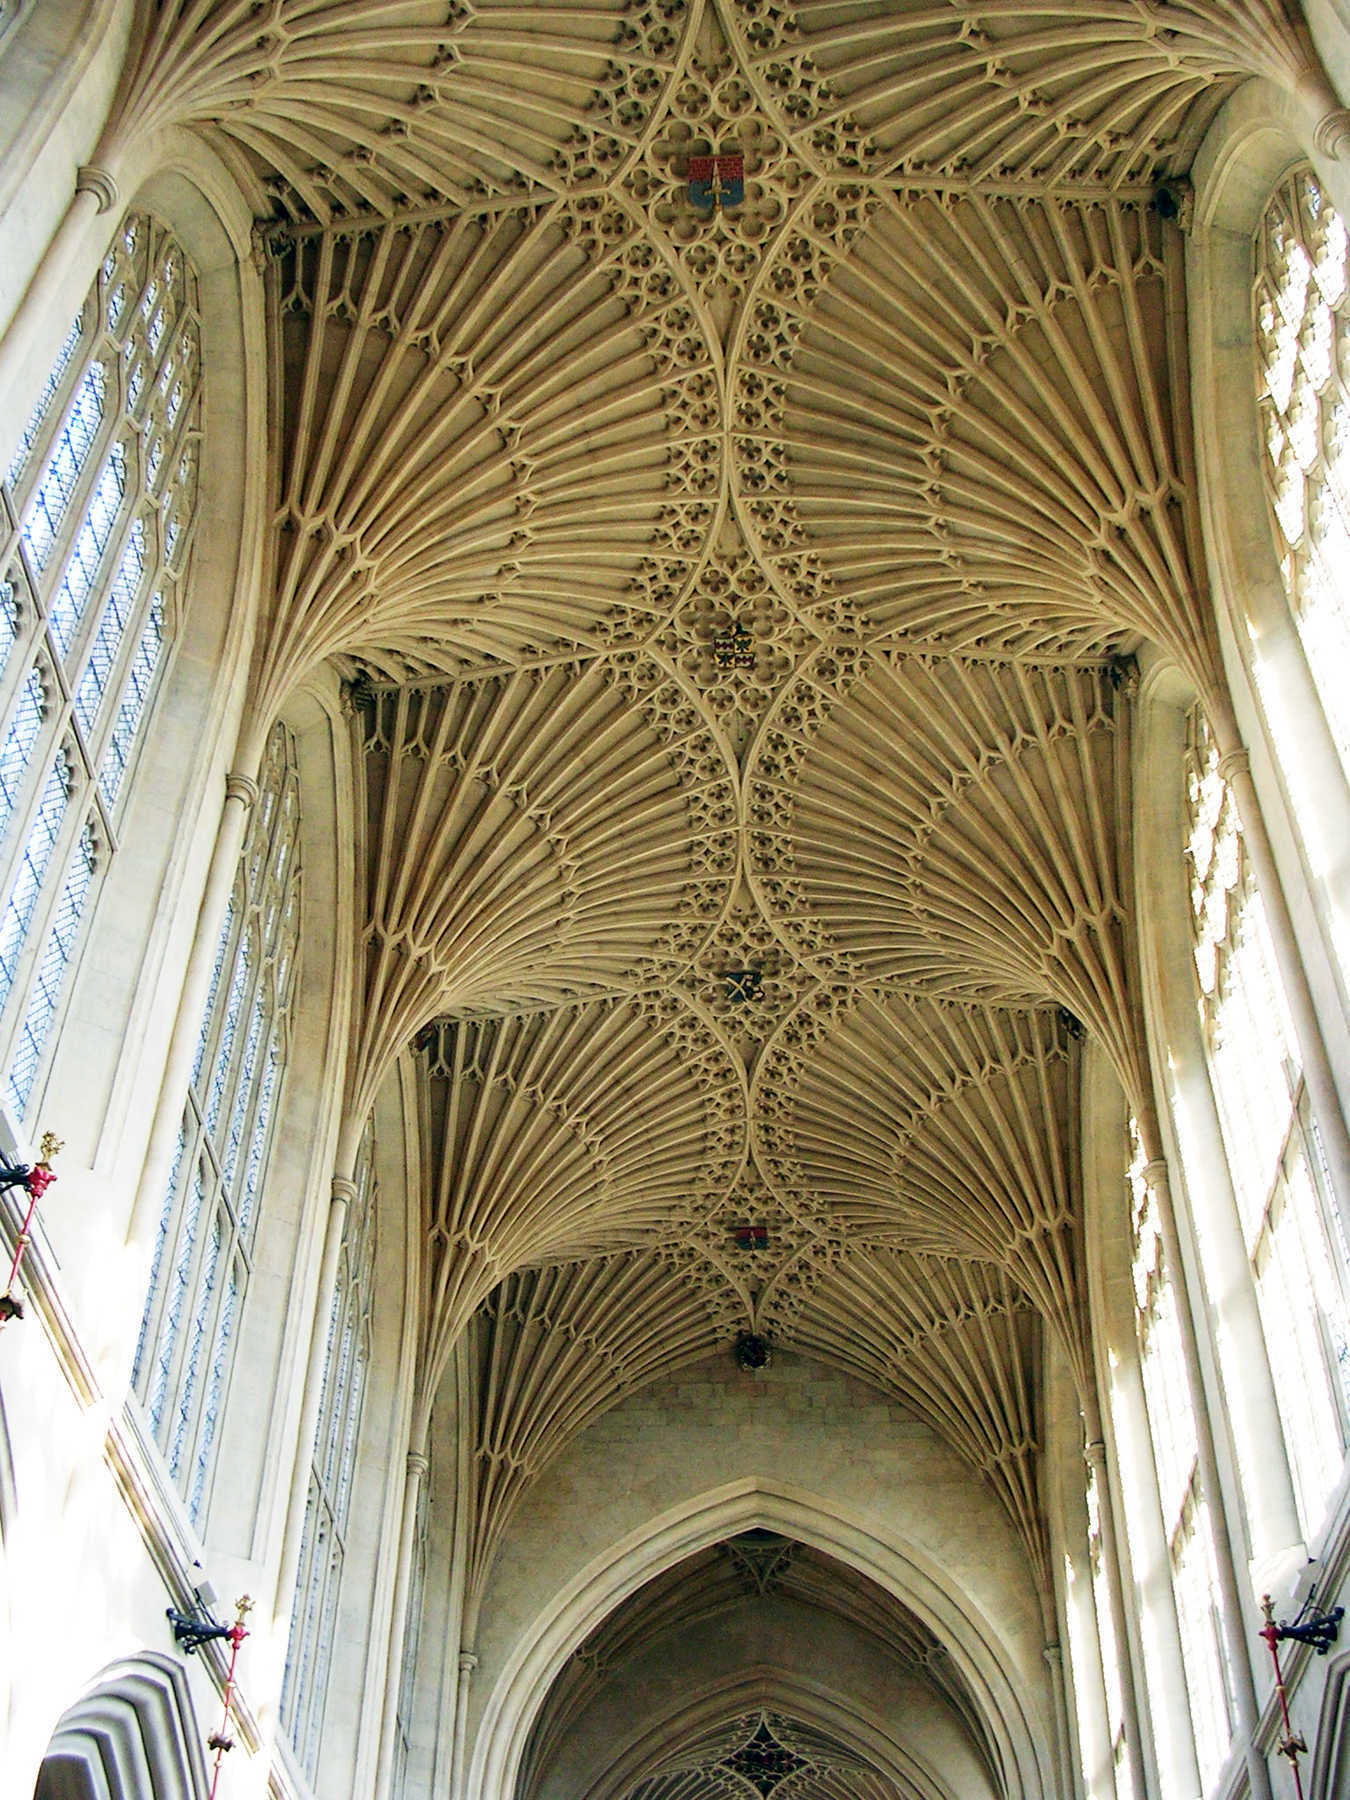 Abbey Ceiling, Bath, England